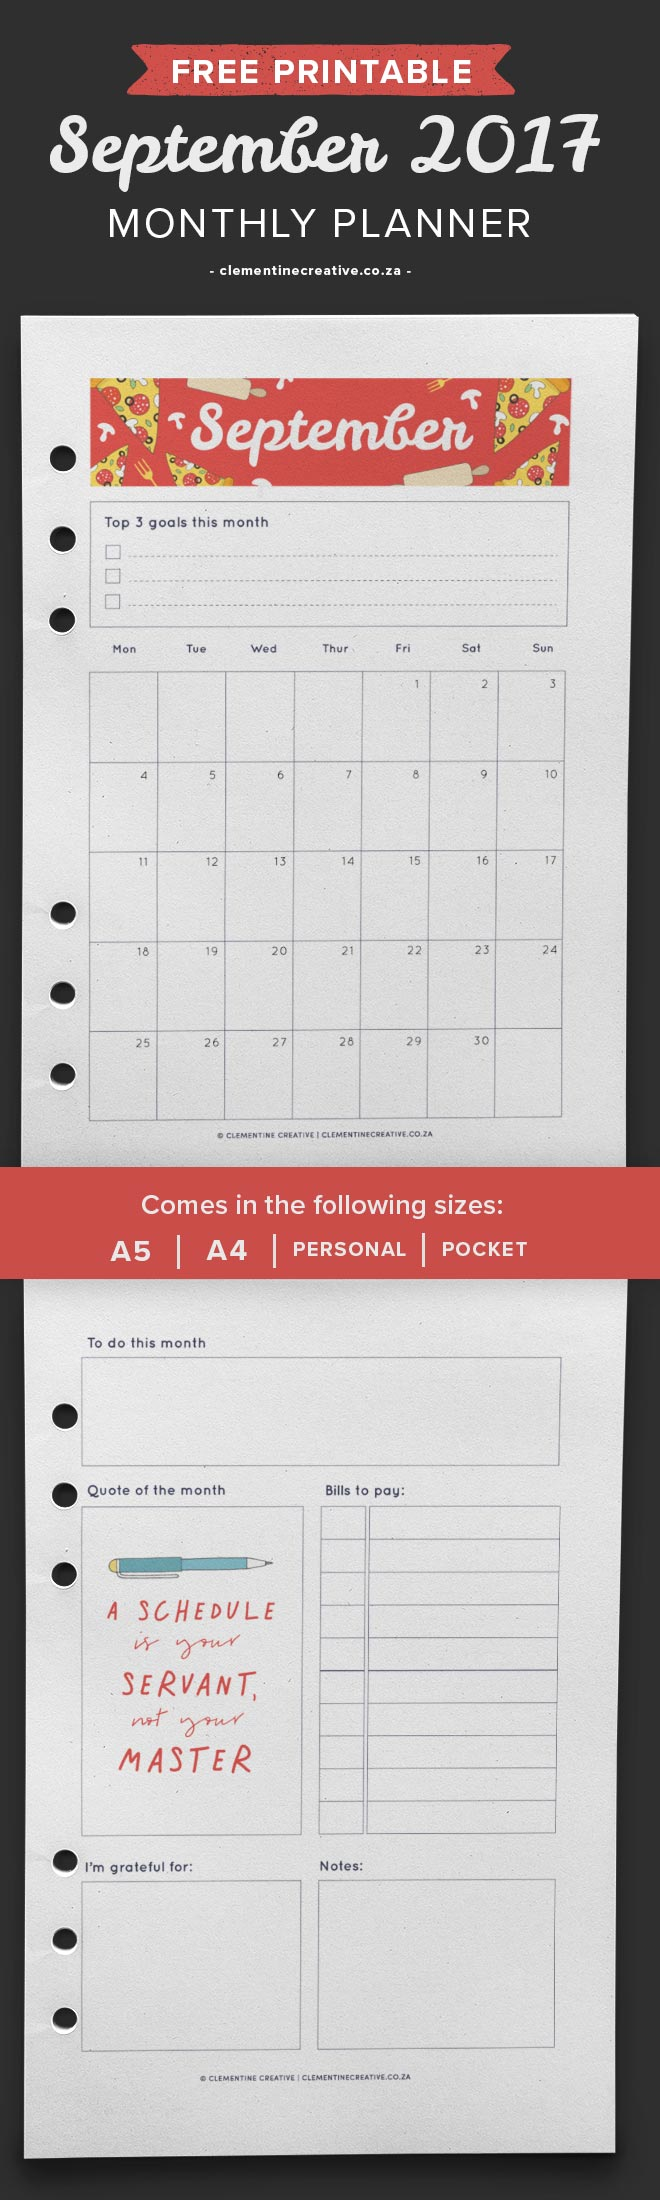 Download this free September 2017 monthly planner template here to plan your month. Choose from A4, A5, Pocket or Personal size. Write down your goals, projects, bills to pay and more.